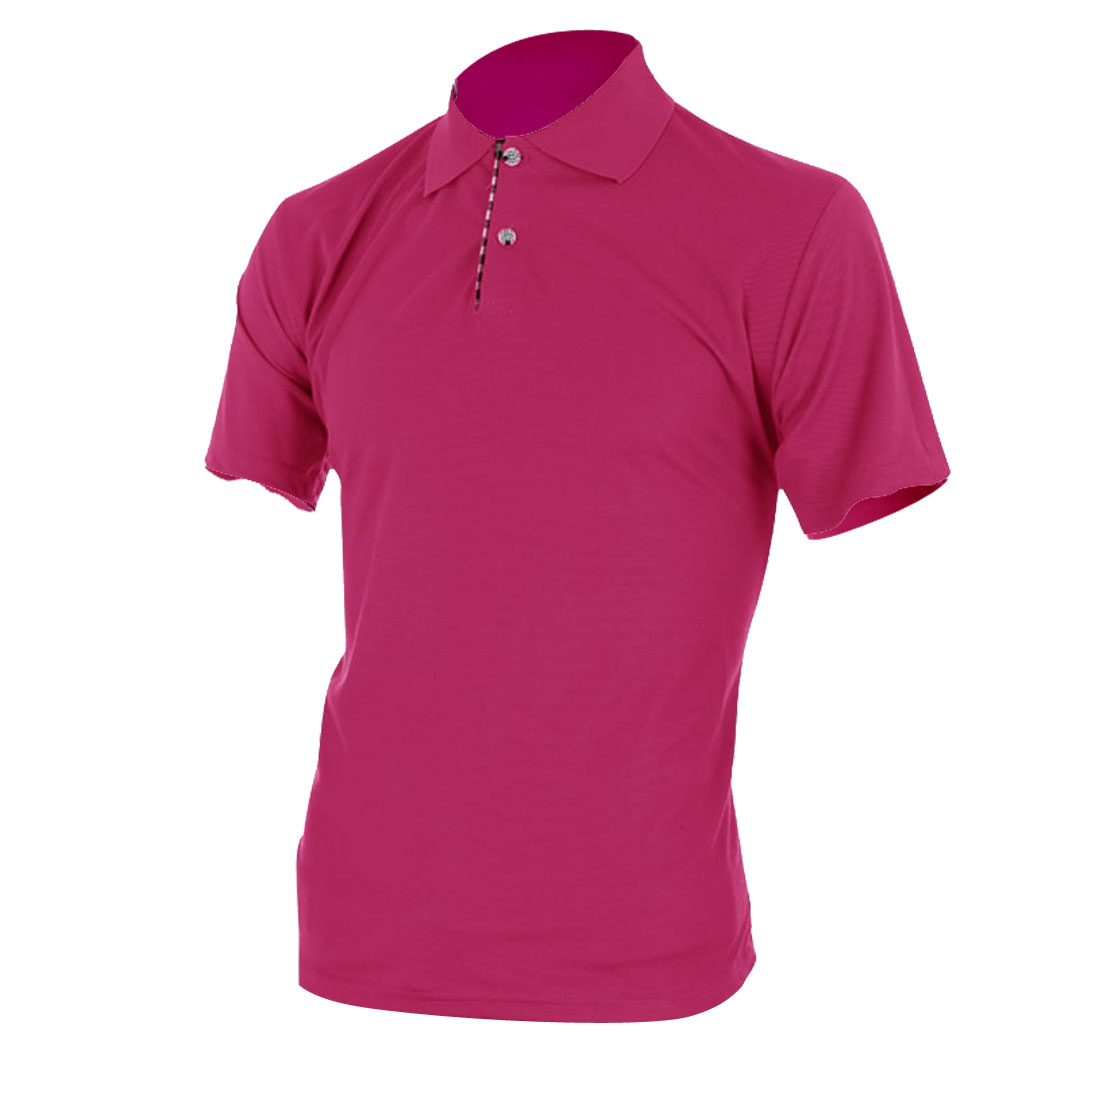 Man Short Sleeve Point Collar Contrast Color Shirt Fuchsia L